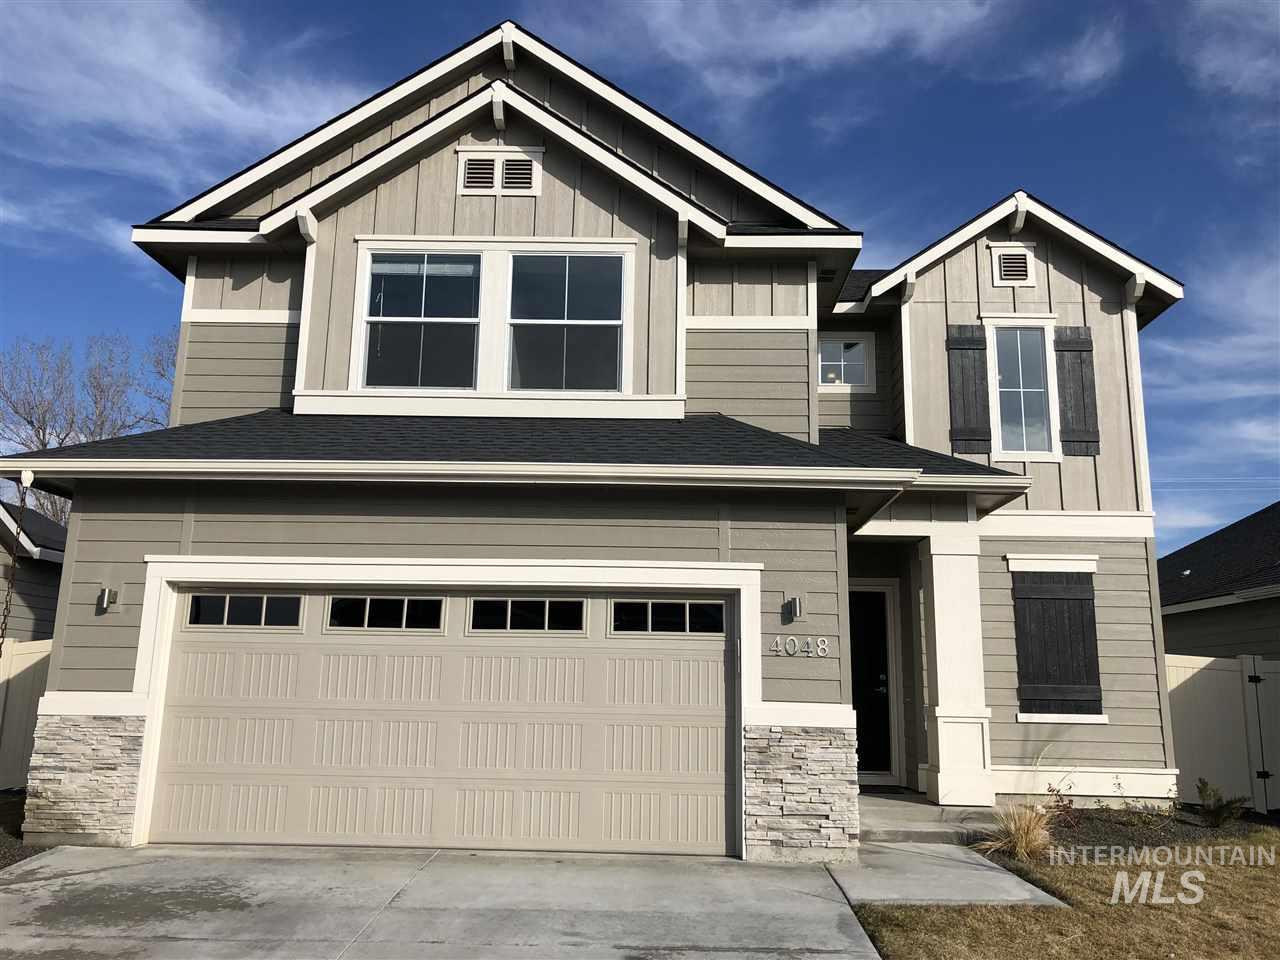 """PRICE REDUCED! Built in 2017, """"LIKE NEW"""" & complete w/ great upgrades, landscaping done & sprinkler system in. The """"Hermosa"""" model has great room appeal w/ large open living spaces on the main level & huge windows. Kitchen w/ granite slab, under mount sink, full tile backsplash, flat glass stove, upgraded dishwasher, built-in tech hub/desk. Sun Valley textured walls, custom white painted ceilings. Large Master Suite, master bath w/ dual sink & raised vanity, custom tiled tub, master shower, fully fenced."""